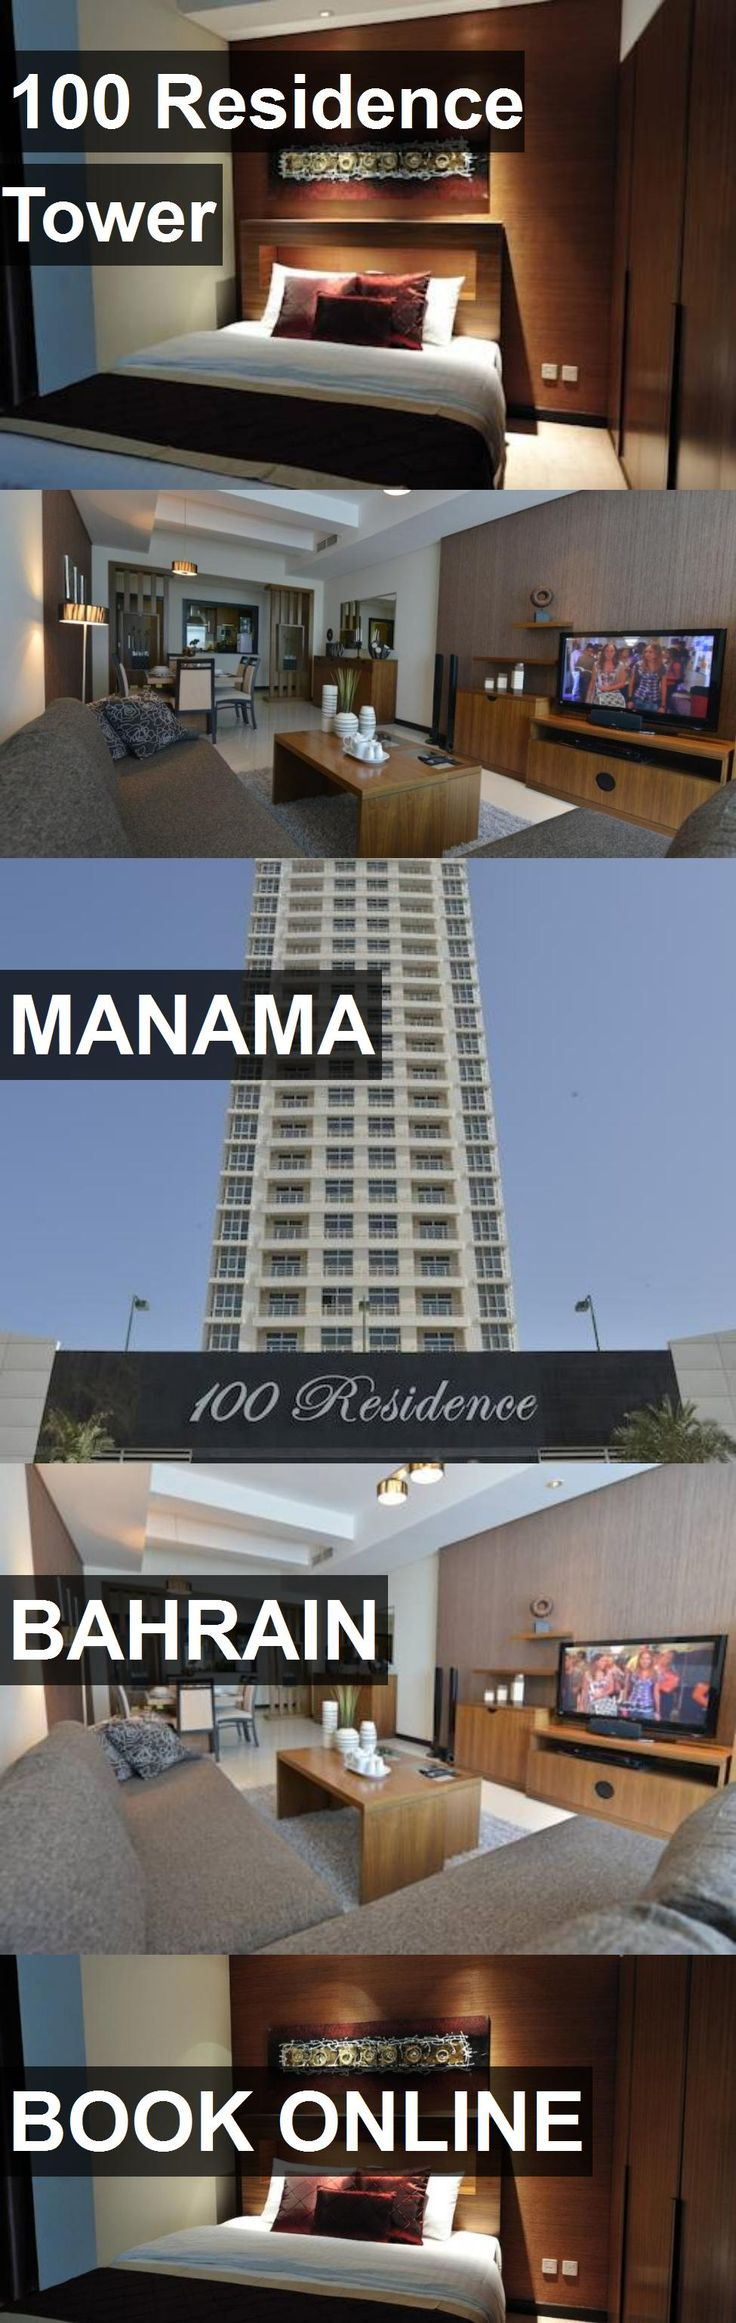 Hotel 100 Residence Tower in Manama, Bahrain. For more information, photos, reviews and best prices please follow the link. #Bahrain #Manama #100ResidenceTower #hotel #travel #vacation